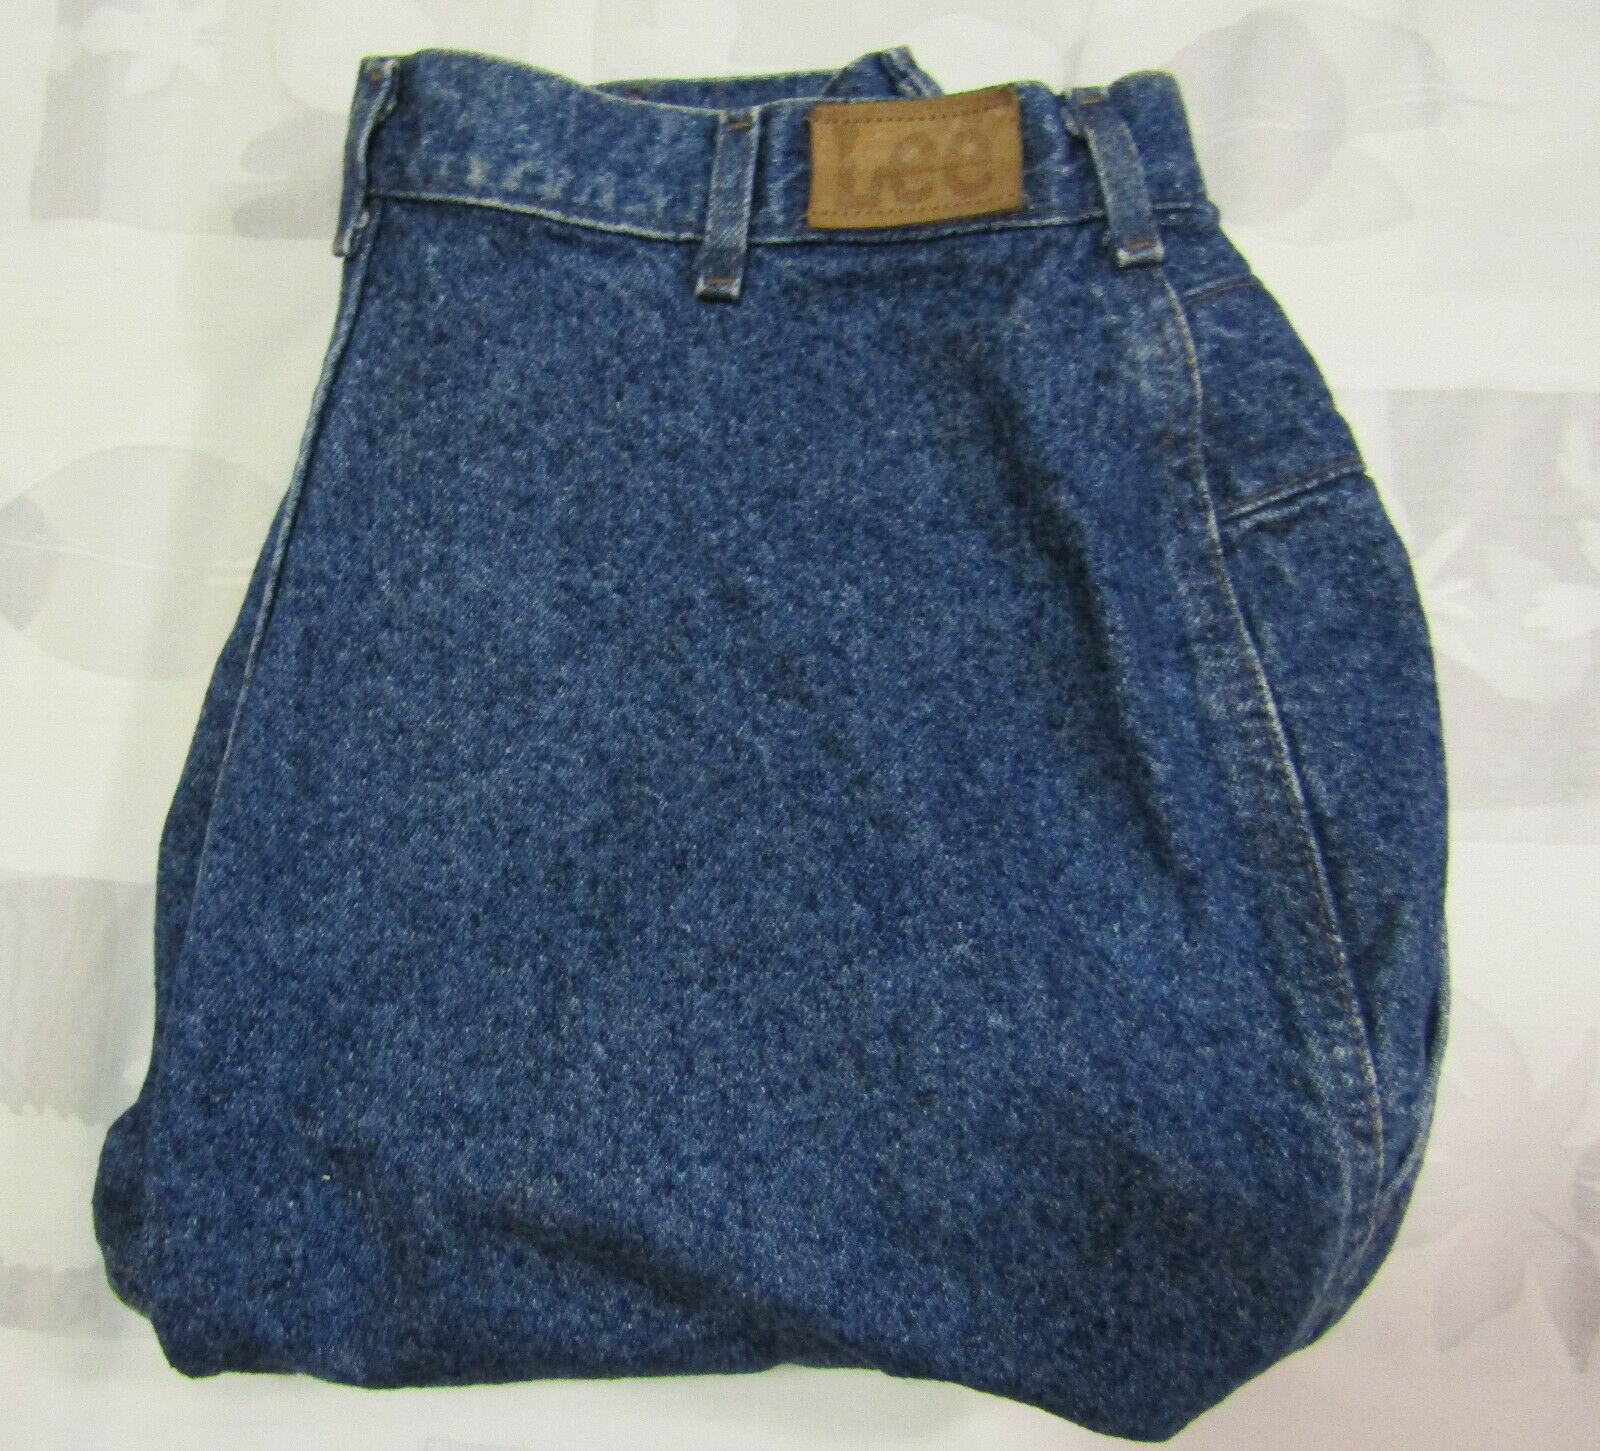 Primary image for Lee Mom Jeans High Rise Size 20W Pet 34 X 27 Womens Vintage Made In USA